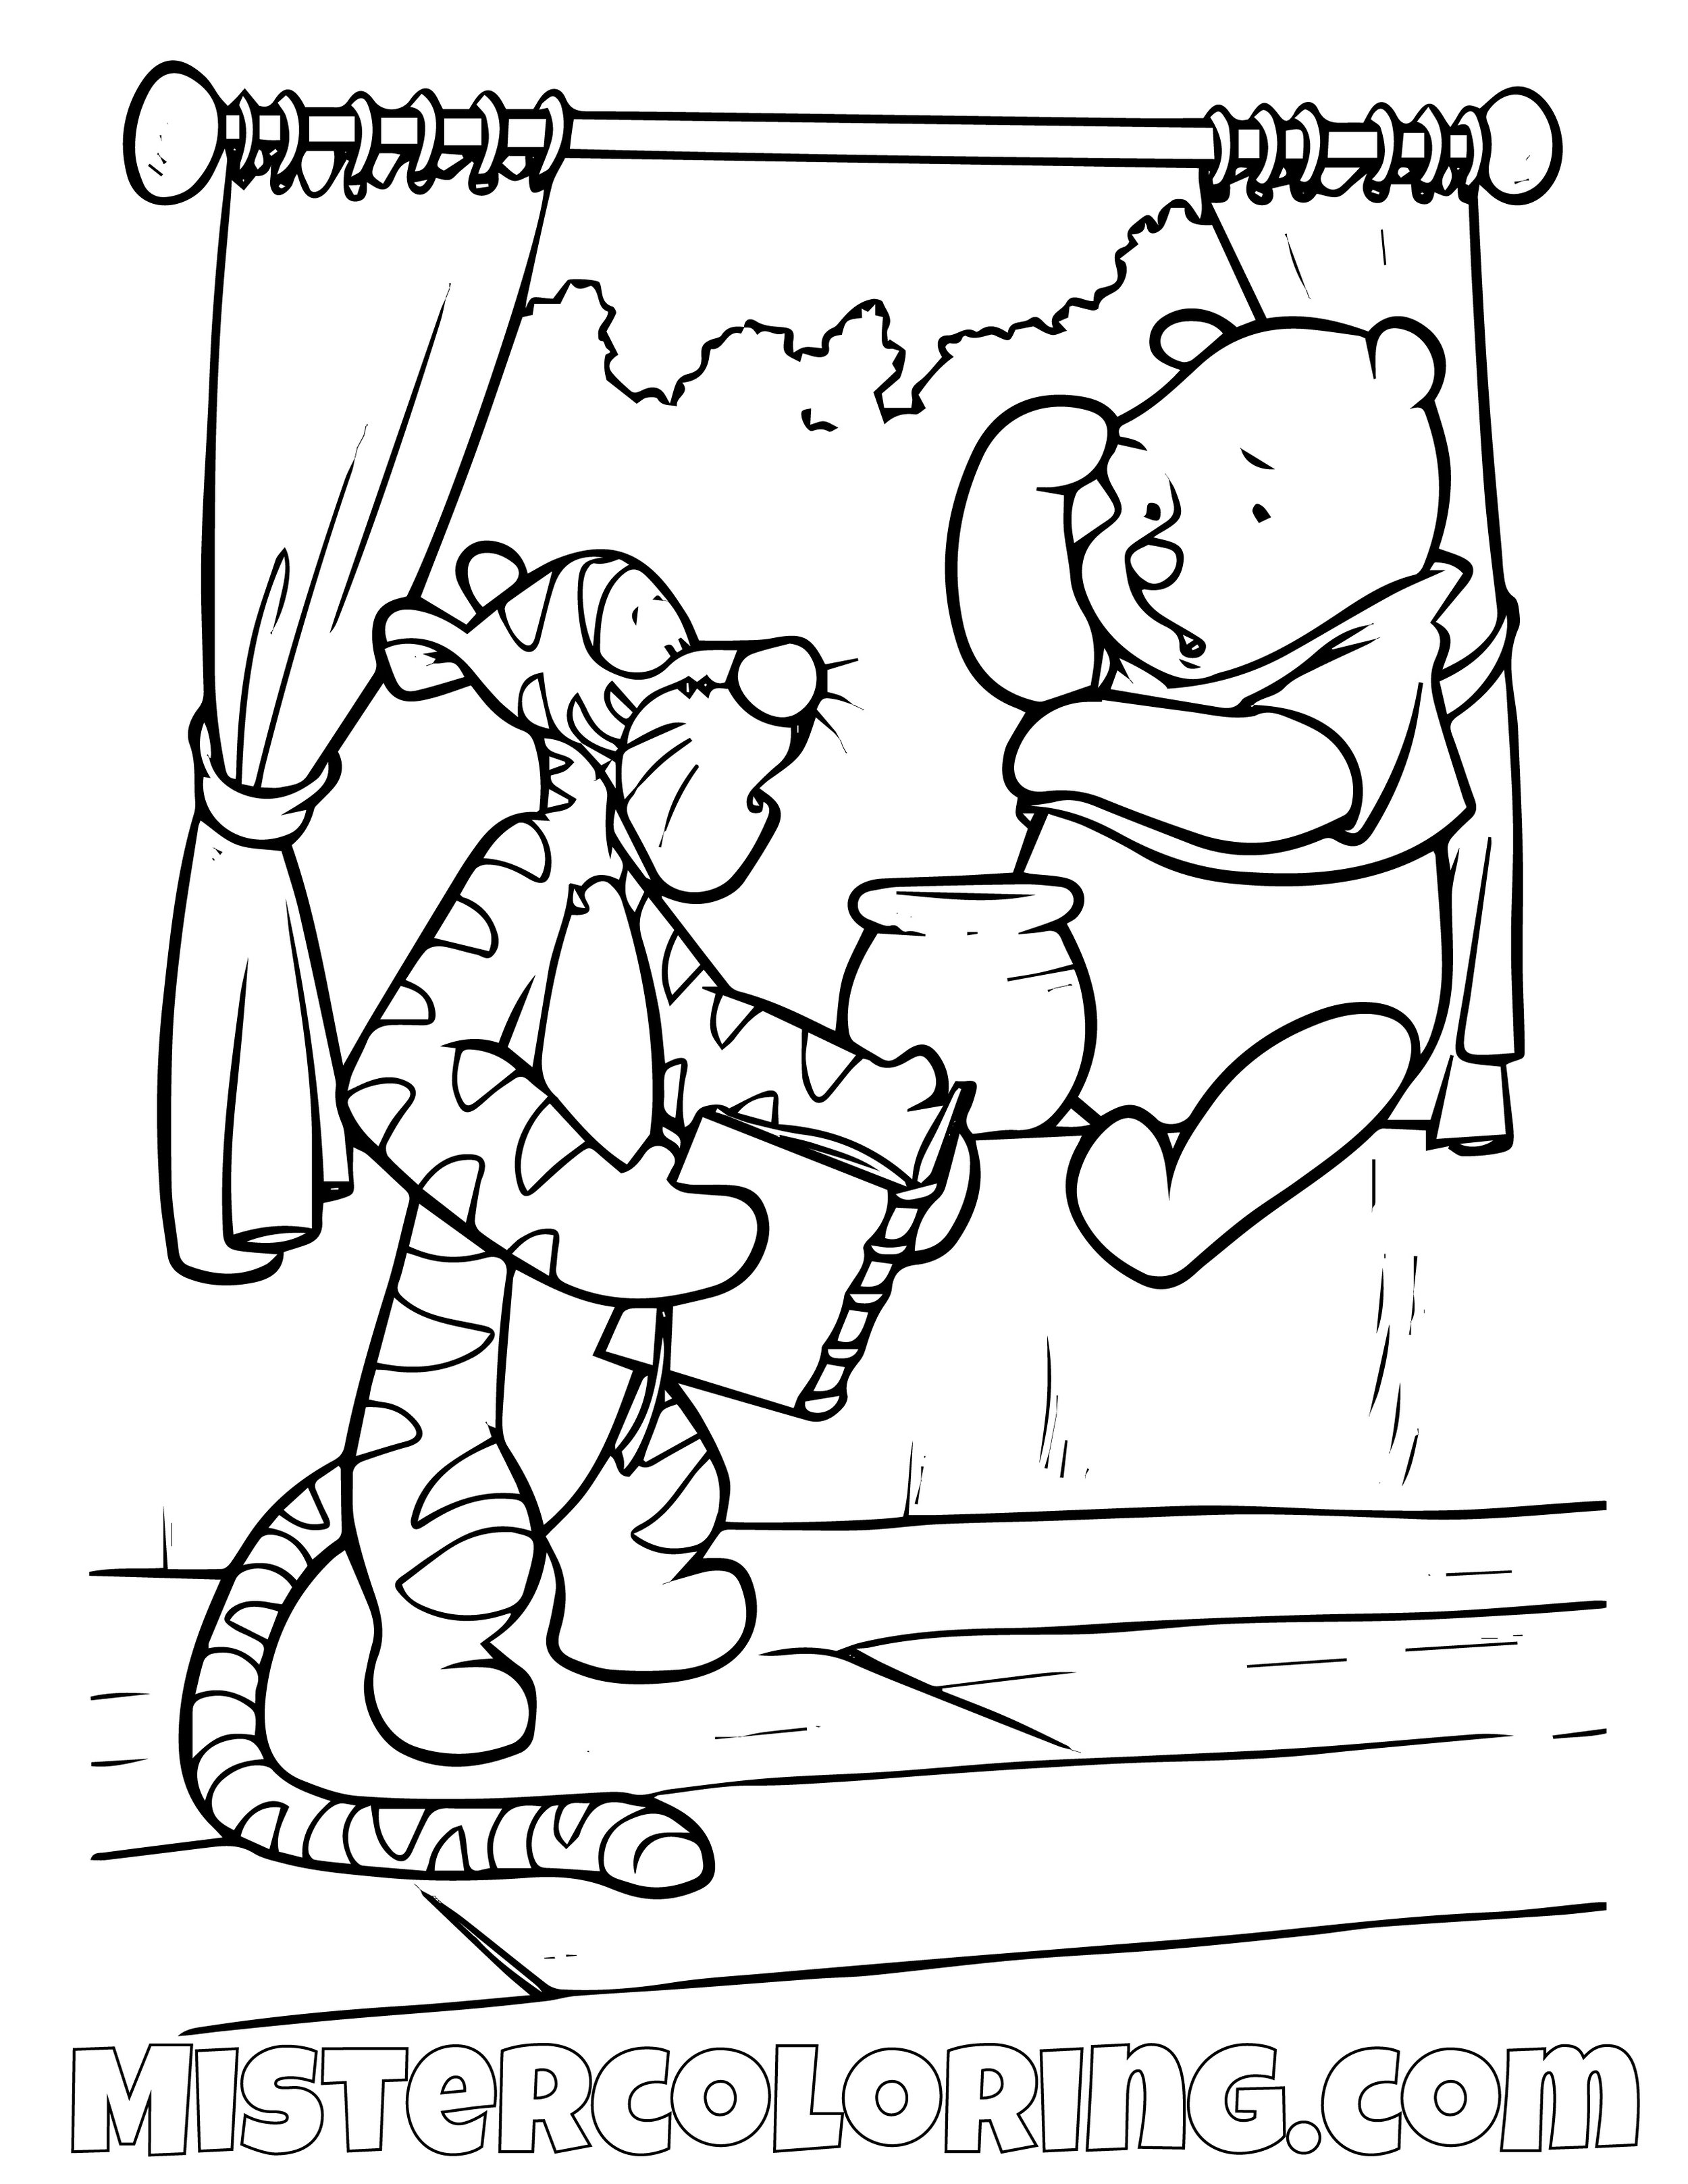 Tiger Showing Book To Winnie The Pooh Coloring Page